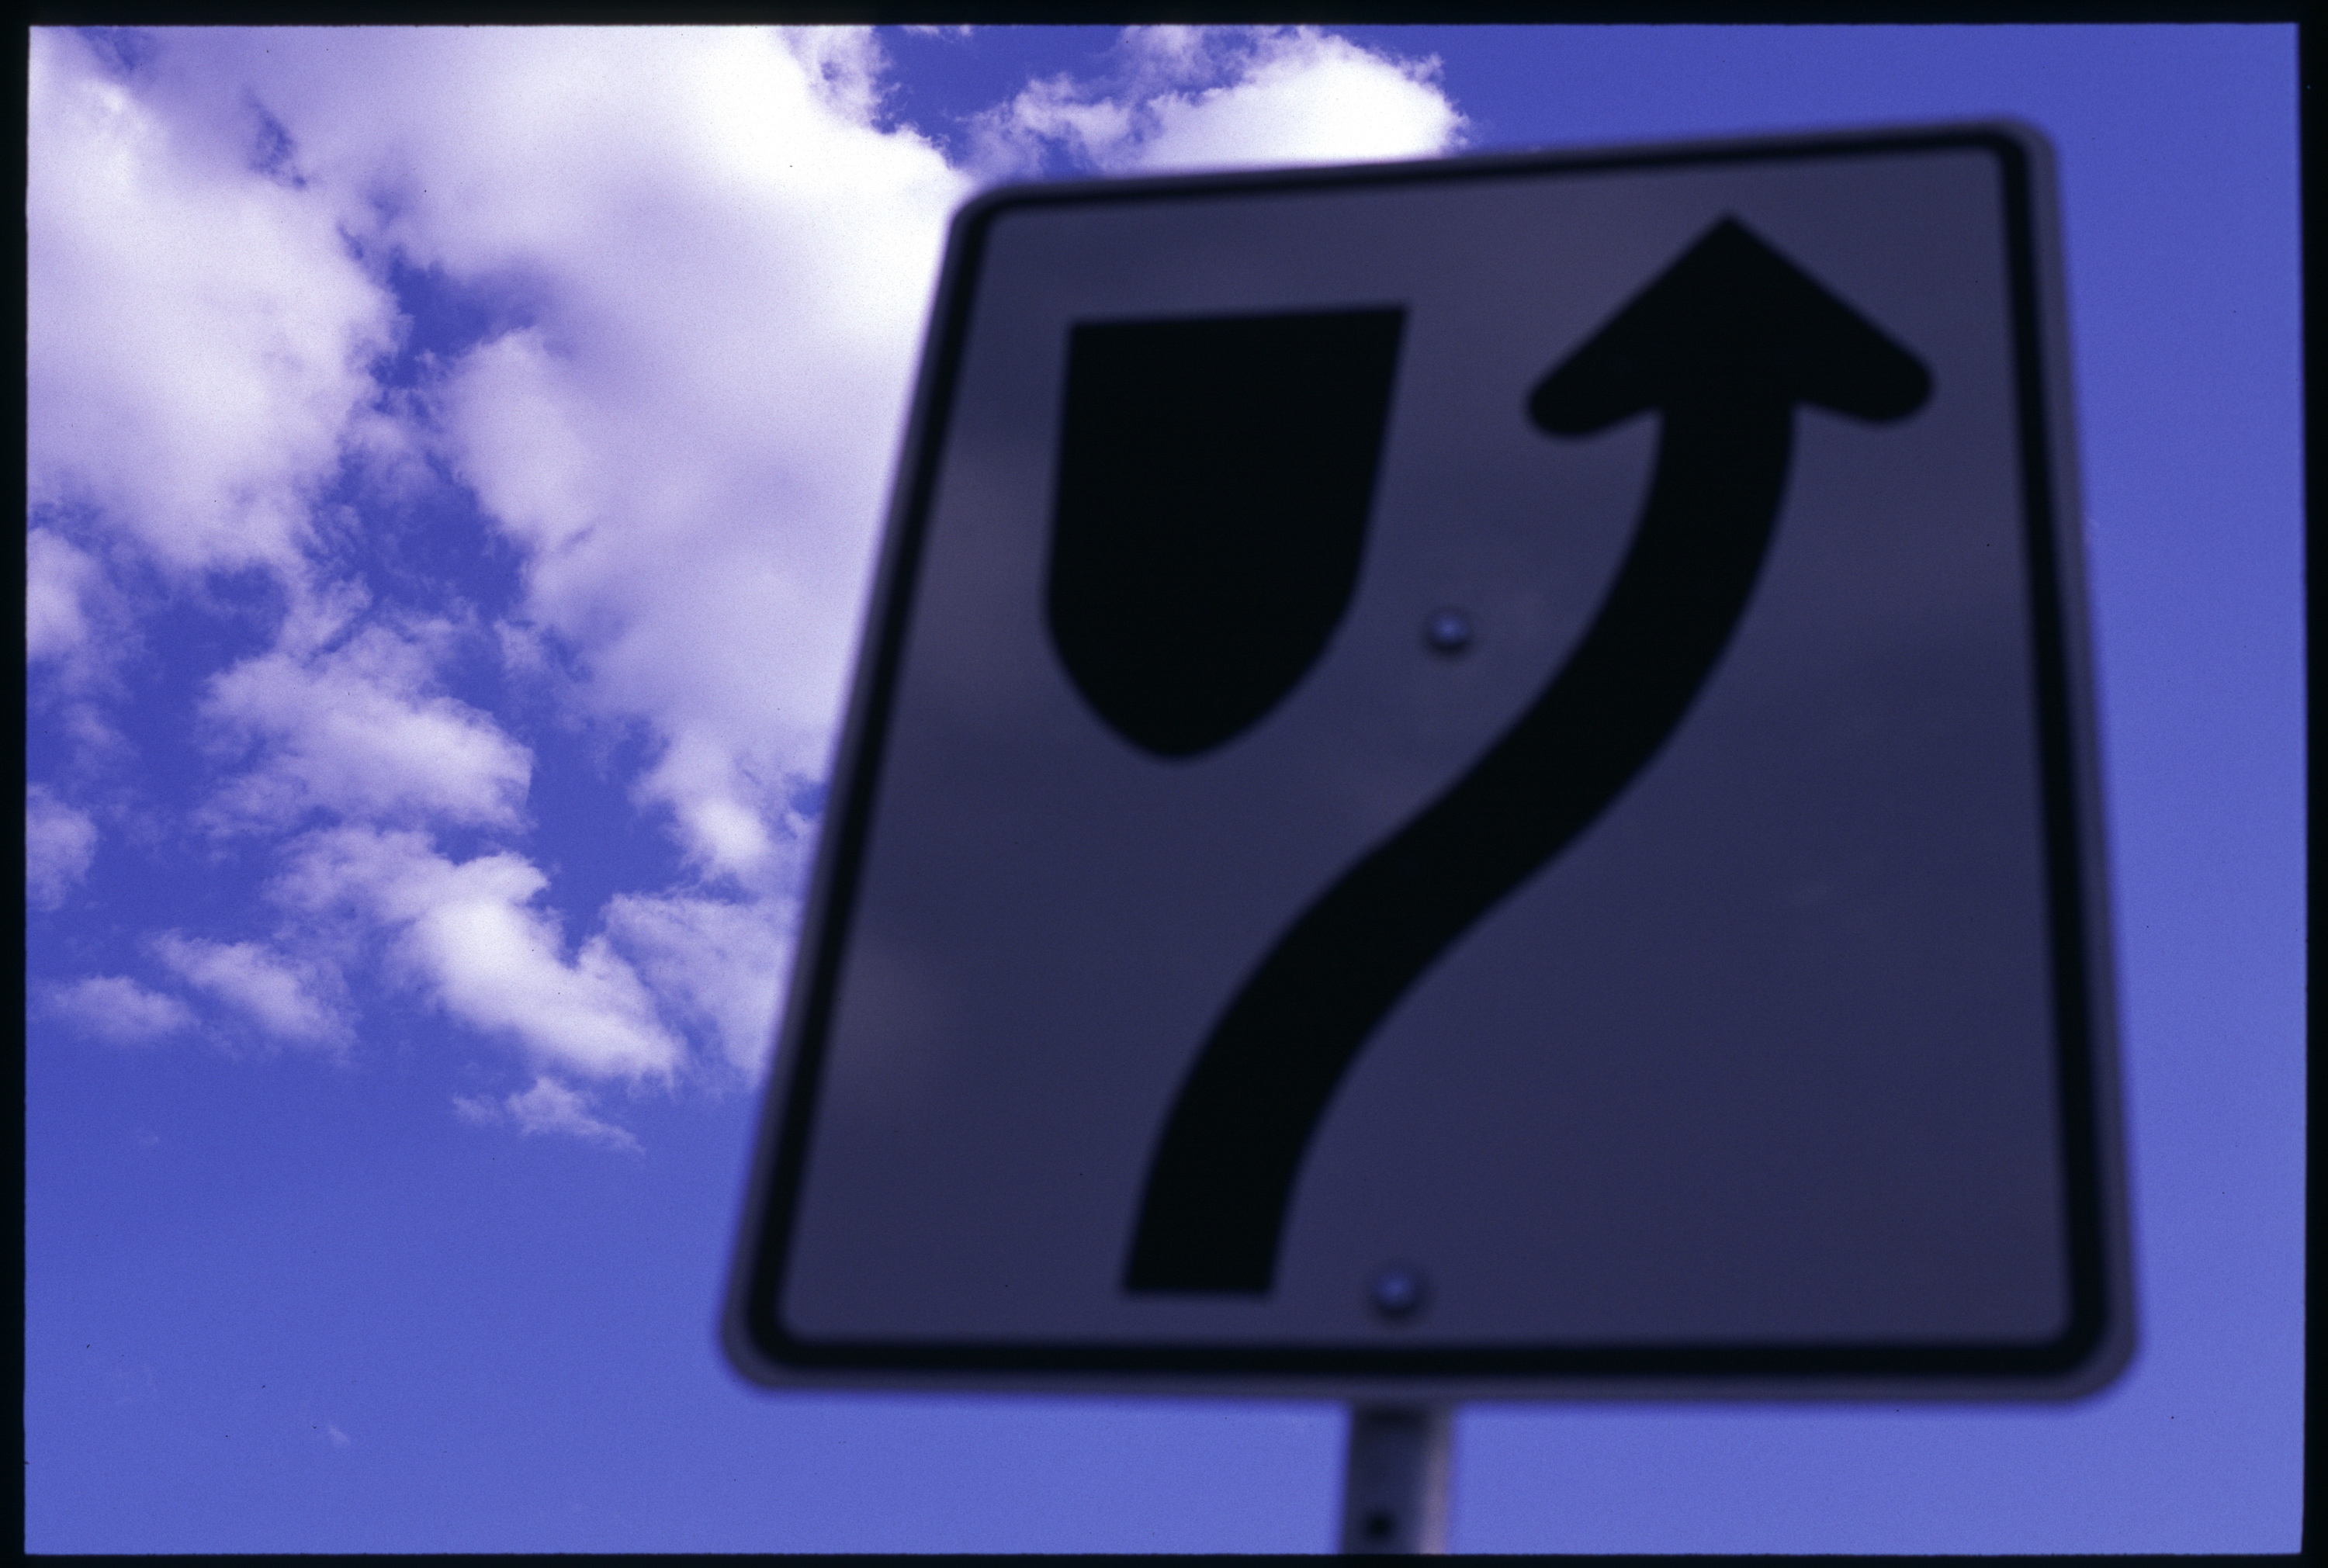 Sign in the sky, Blue, Bspo06, Clouds, Pole, HQ Photo